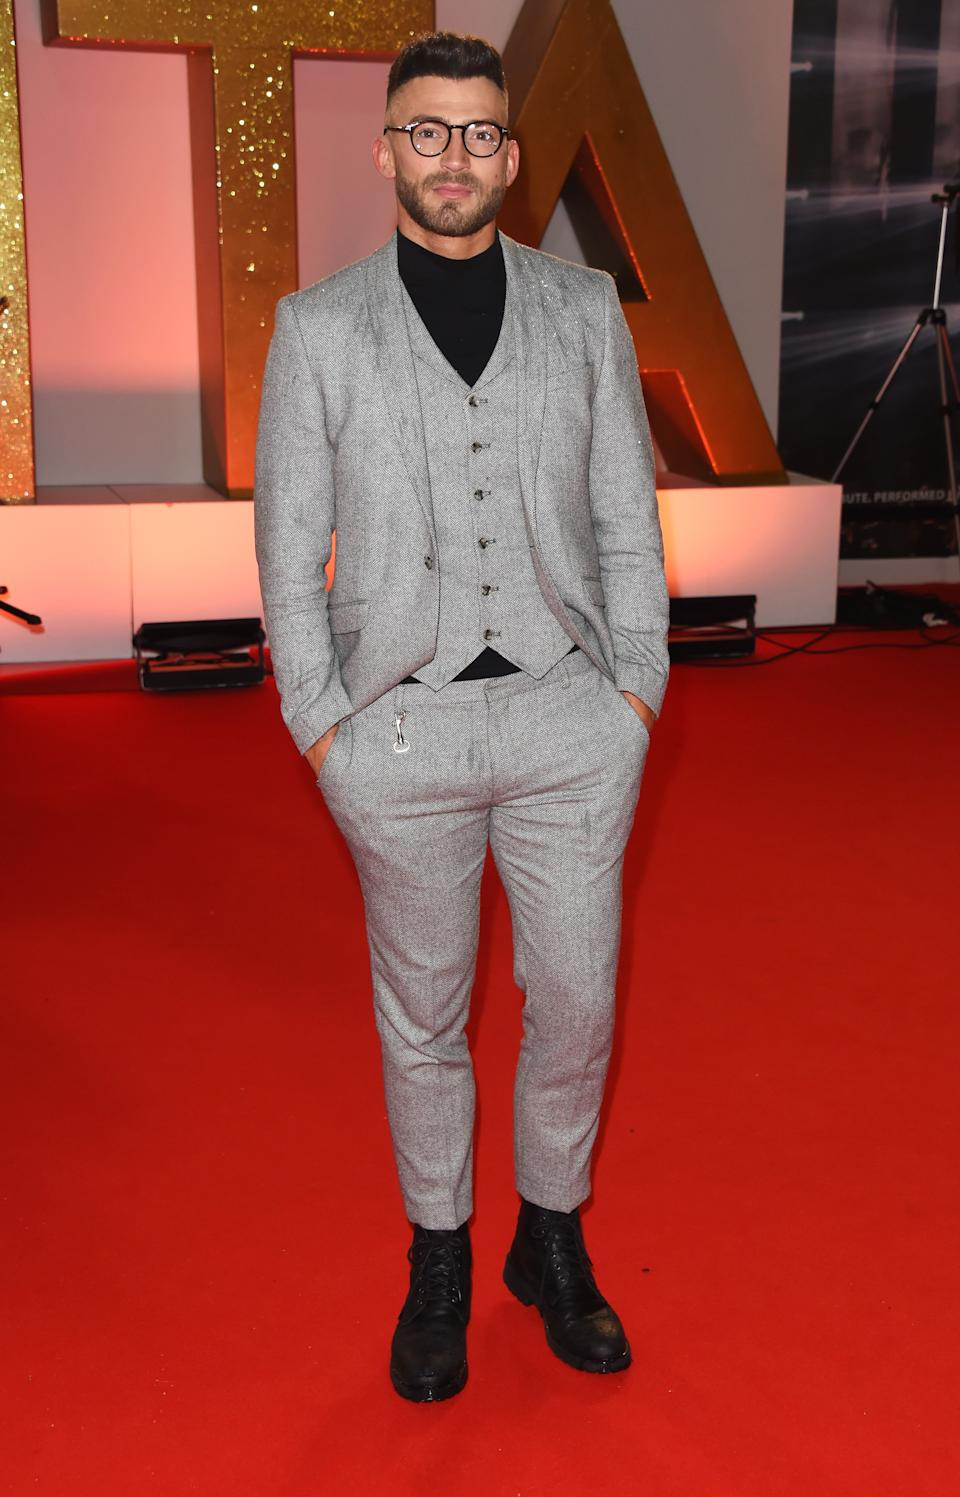 Originally an aspiring singer, Jake appeared on not one but two series of The X Factor, before landing a place on I'm A Celebrity, making it all the way to the final but losing out on the jungle throne to Carl Fogarty.<br /><br />Following this, he and his then-girlfriend appeared on the ITVBe series Seven Days With..., before he later took part in The Jump, sadly crashing out without a win once again.<br /><br />The spell was finally broken for Jake in 2018, when he was crowned champion of Dancing On Ice, alongside his partner Vanessa Bauer.